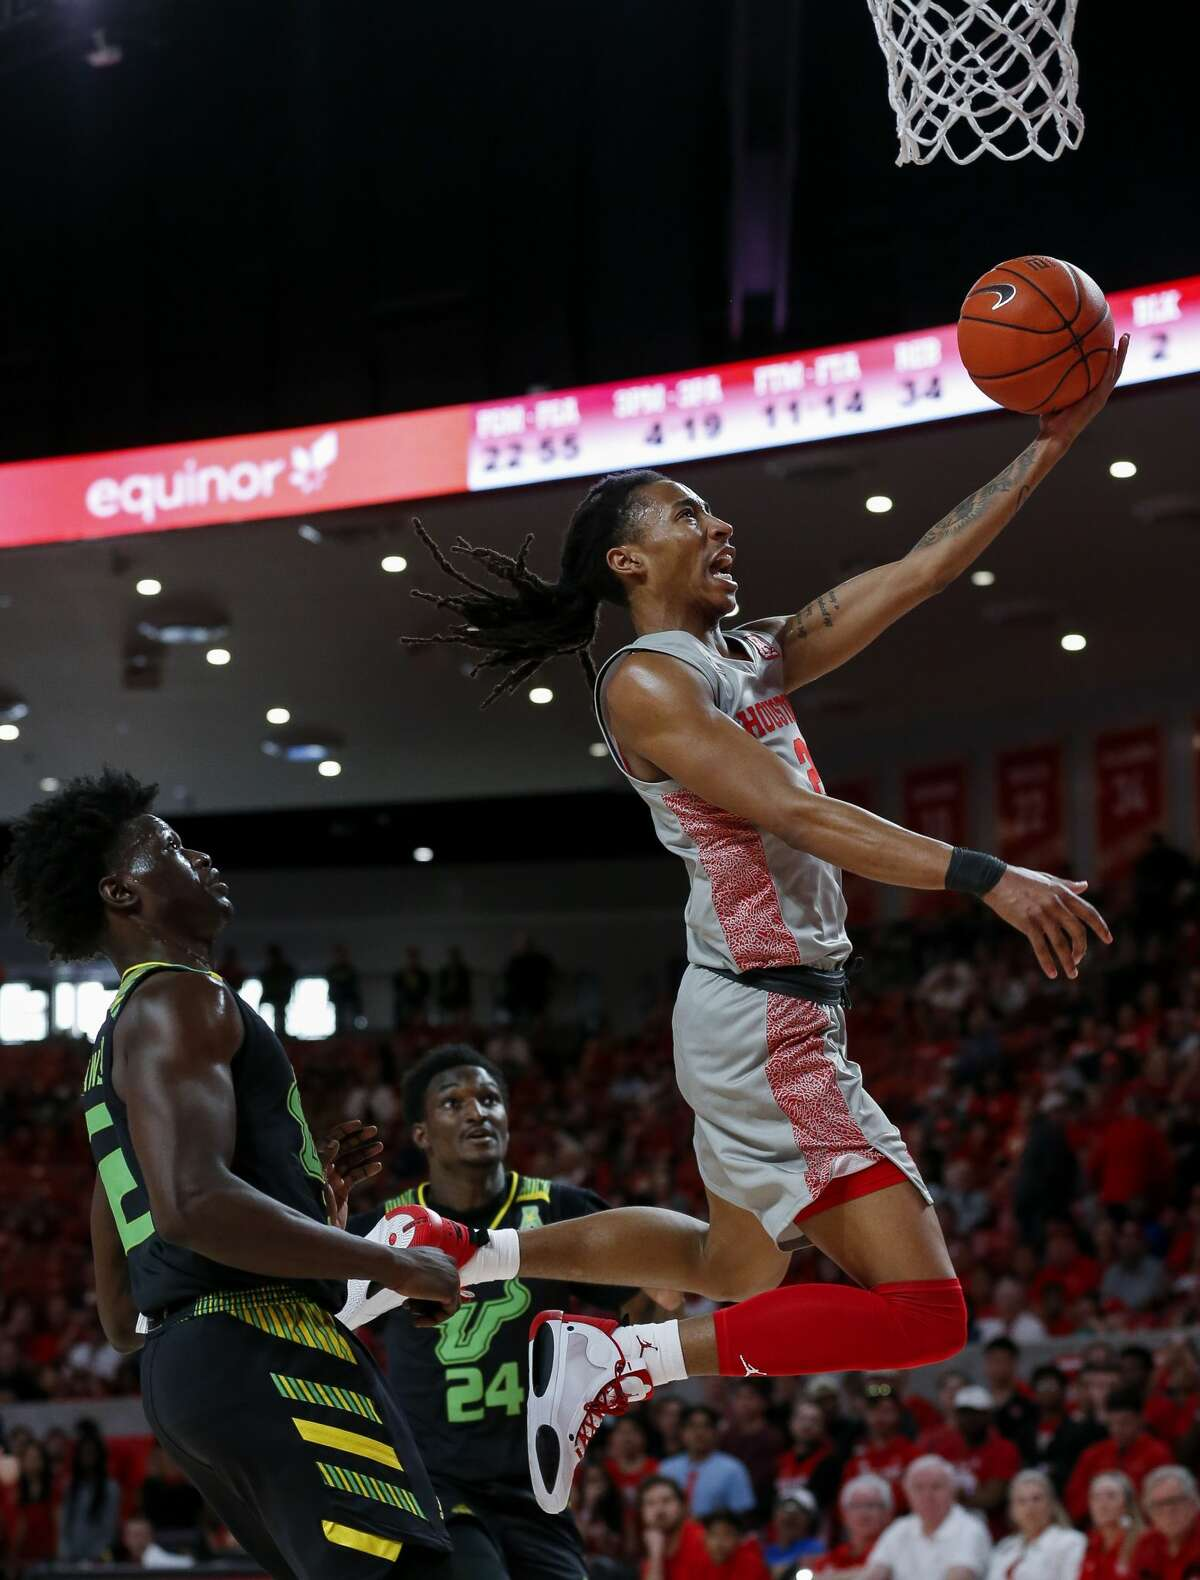 Houston Cougars guard Caleb Mills (2) scores a layup against the South Florida Bulls during the second half of an NCAA game at the Fertitta Center Sunday, Jan. 26, 2020, in Houston. The Cougars won 68-49.